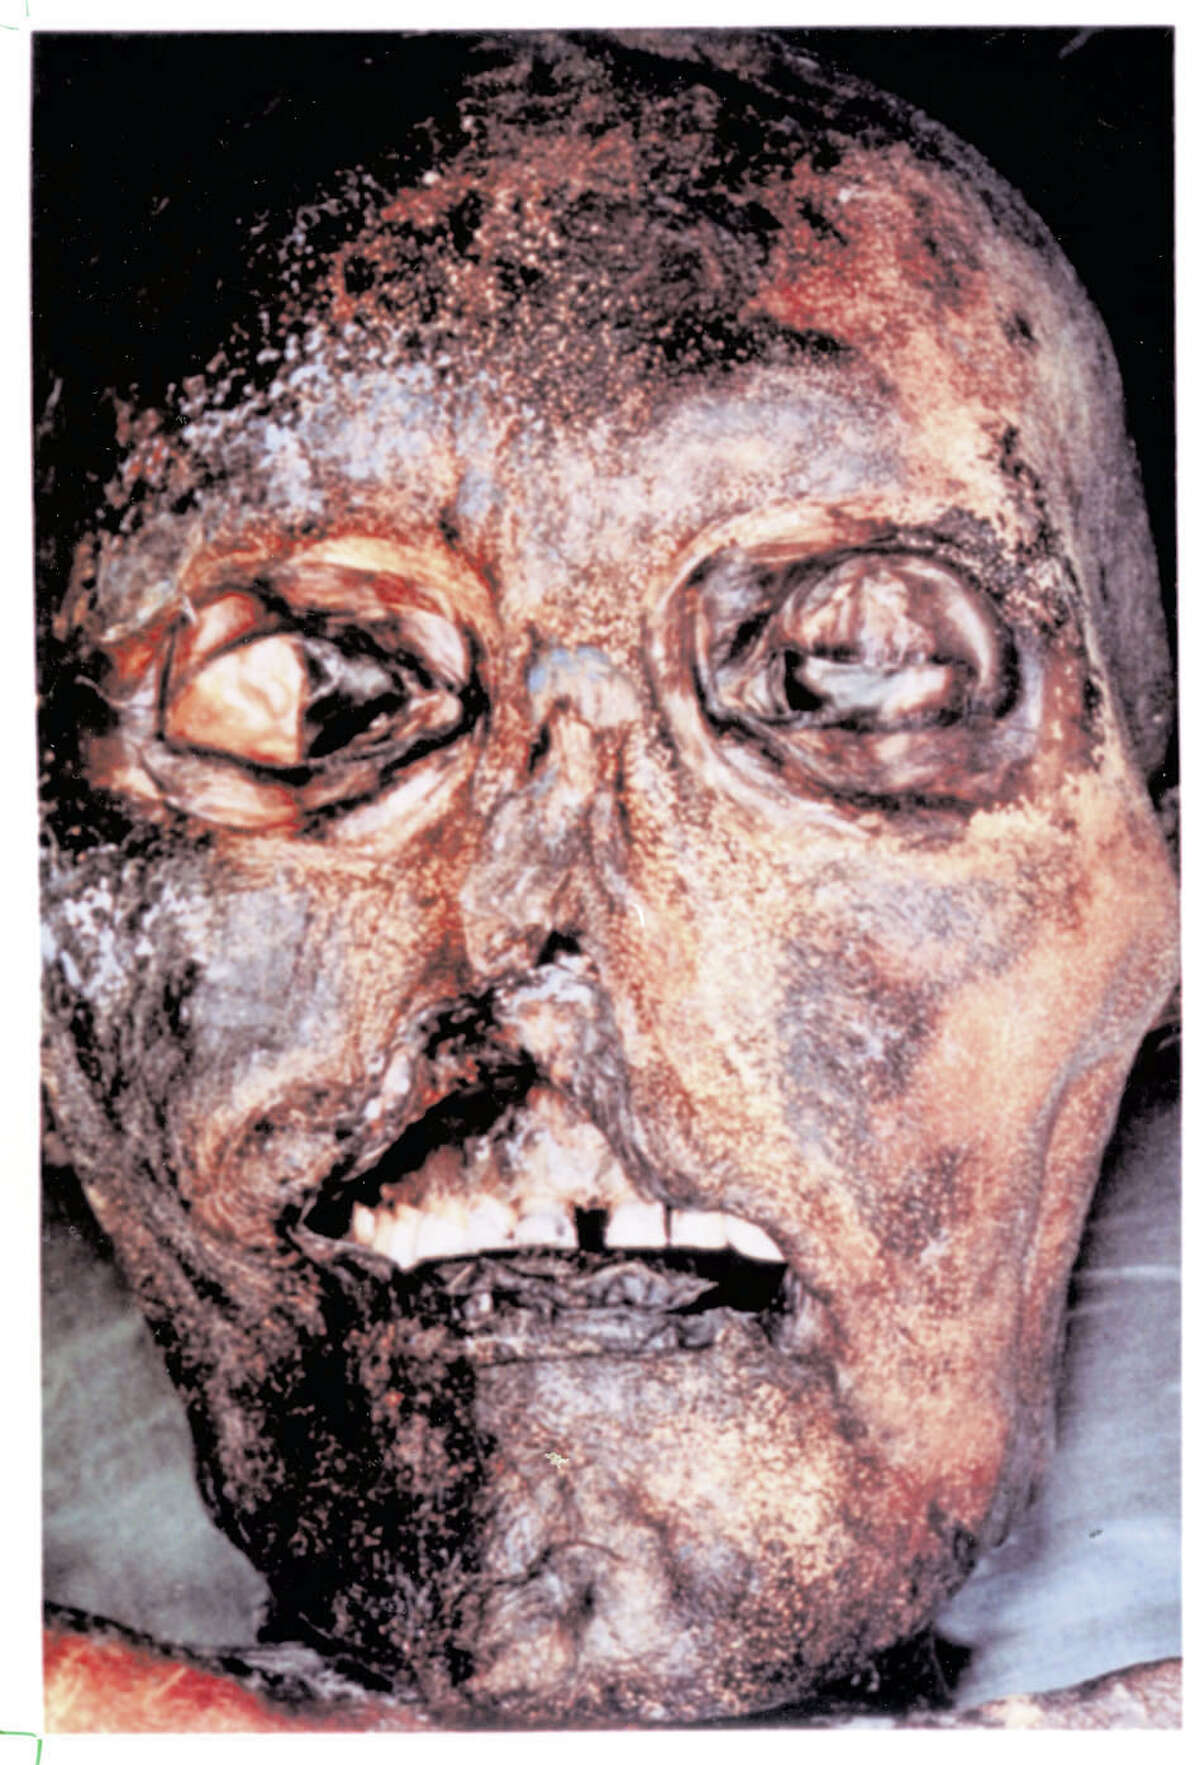 Otzi the man The mummy found in the Alpine ice in 1991 and christened Otzi was about 5 ft. 5 in. tall. He weighed about 100 lbs. and lived about 5,300 years ago. He was probably around 45 years old when he died. His mummification was natural, not man-made like those of the Egyptians.